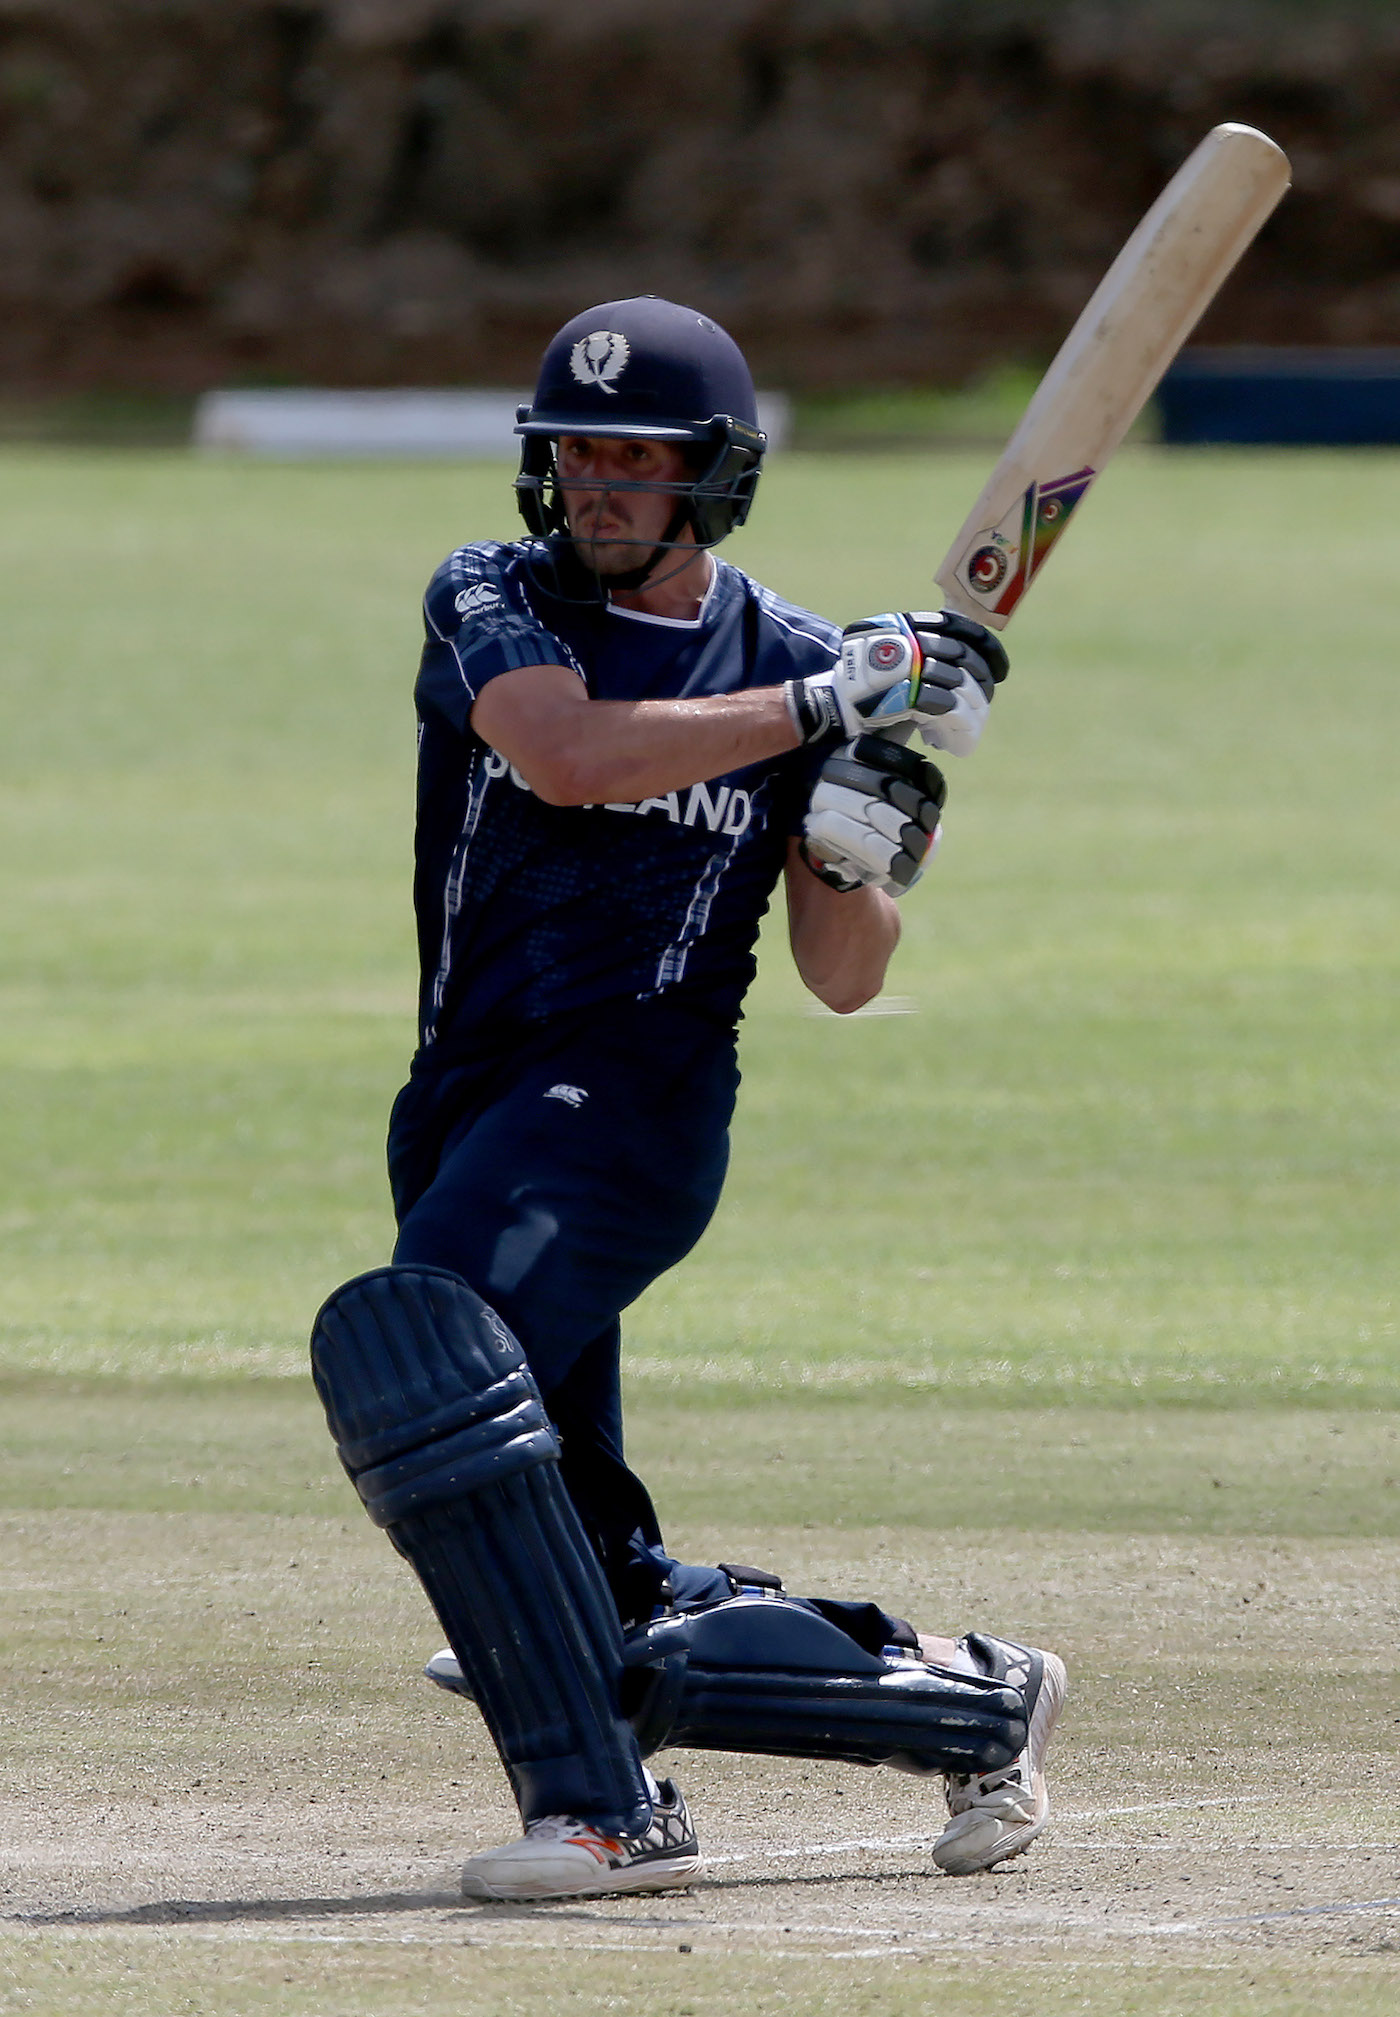 Calum MacLeod dismantled Rashid Khan in the opening match of the World Cup Qualifiers - 49 of his 157 runs came off Rashid's bowling